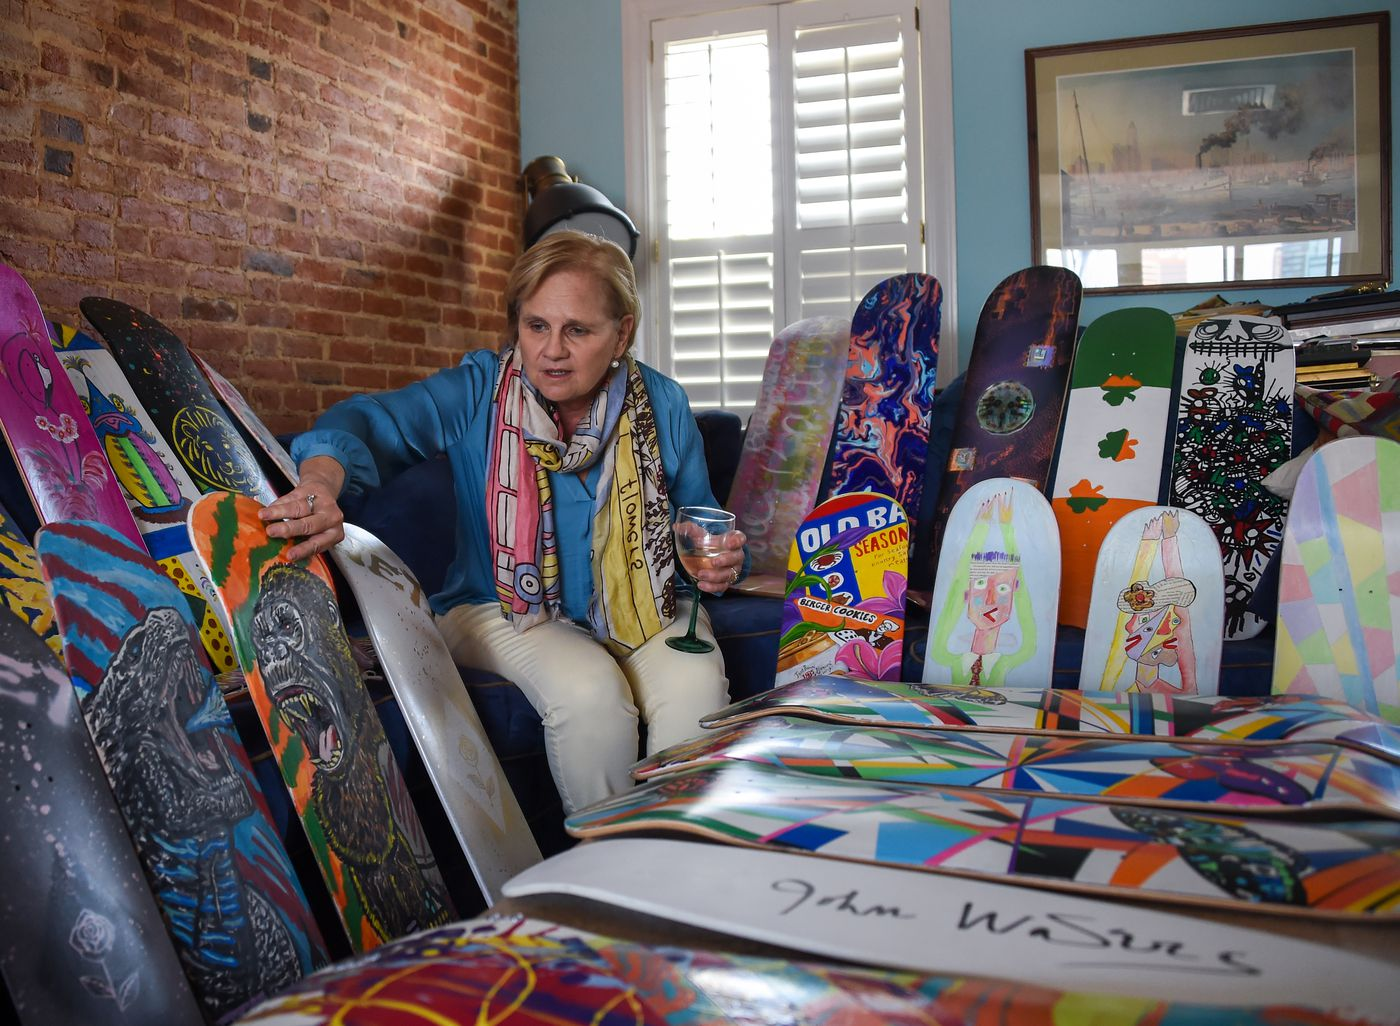 Cindy Conklin displays some of the painted skateboard decks in her home on Wednesday, April 7, 2021; the art pieces will be auctioned off to help fund the completion of Jake's Skate Park at Rash Field.